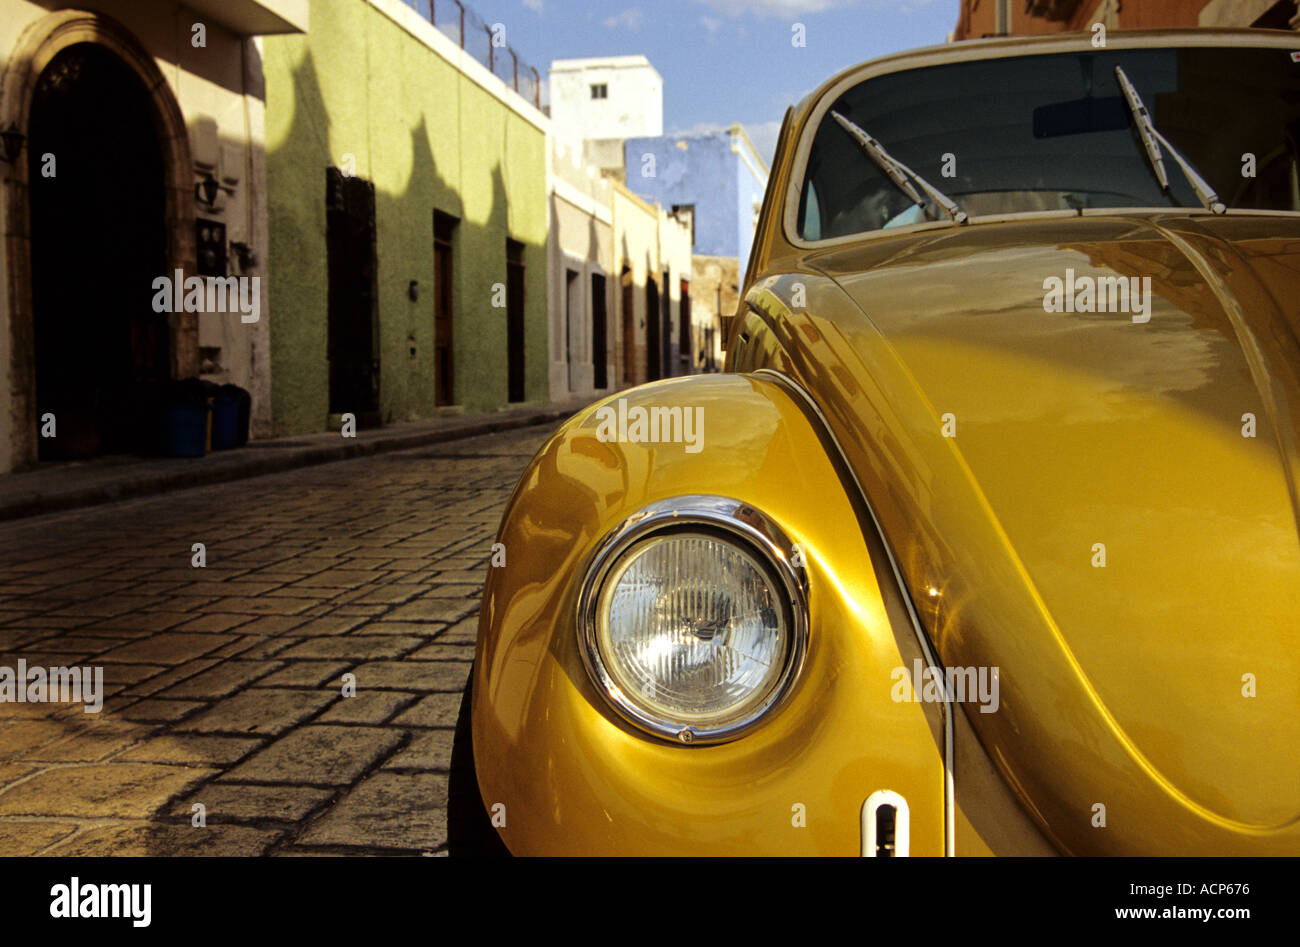 Old VW Beetle in a colorful street in Mexico May 2003 Stock Photo